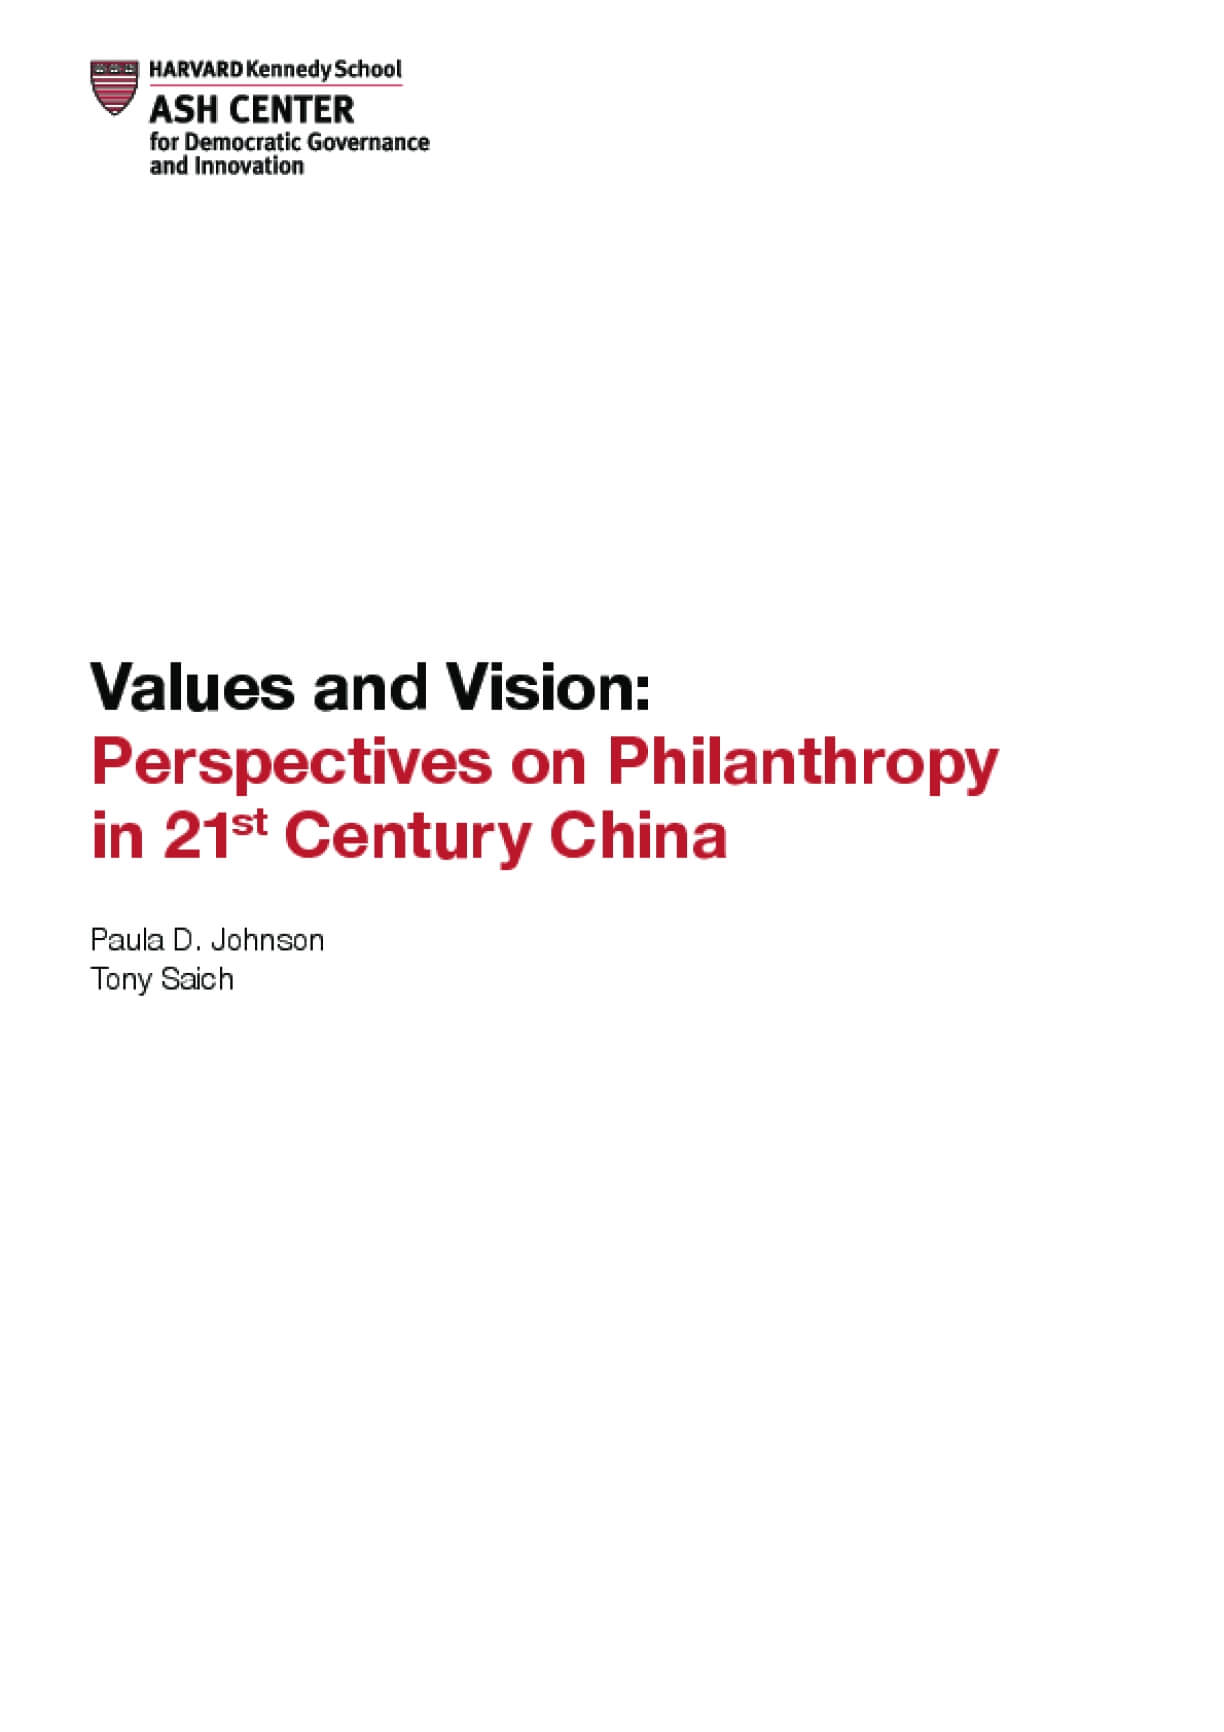 Values and Vision: Perspectives on Philanthropy in 21st Century China